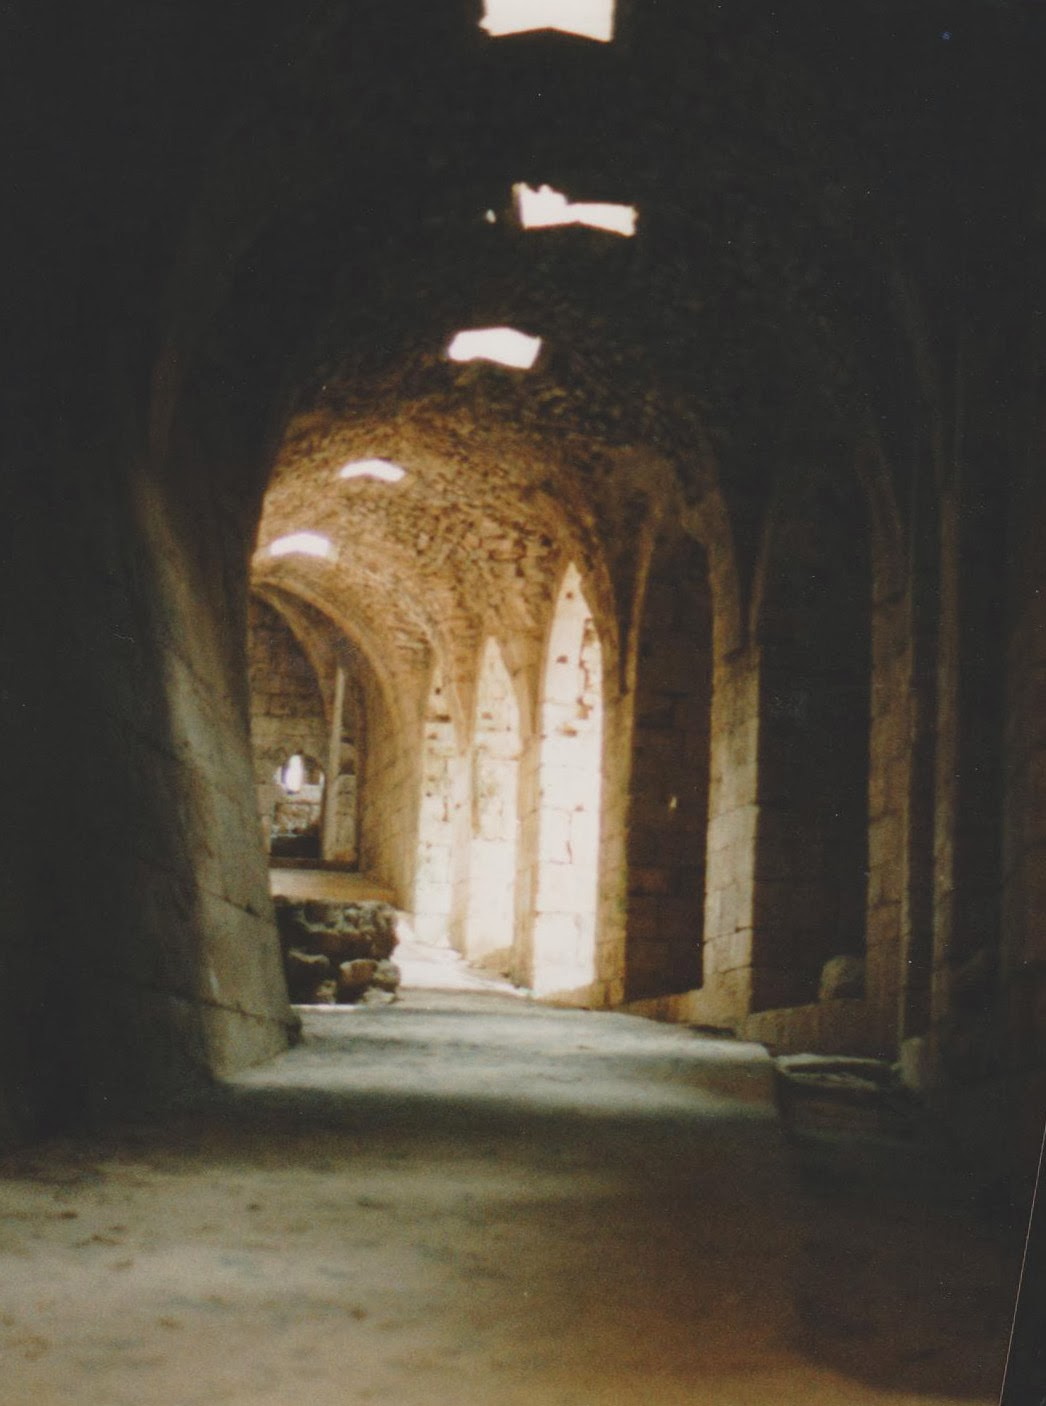 Interior of Krak de Chevaliers